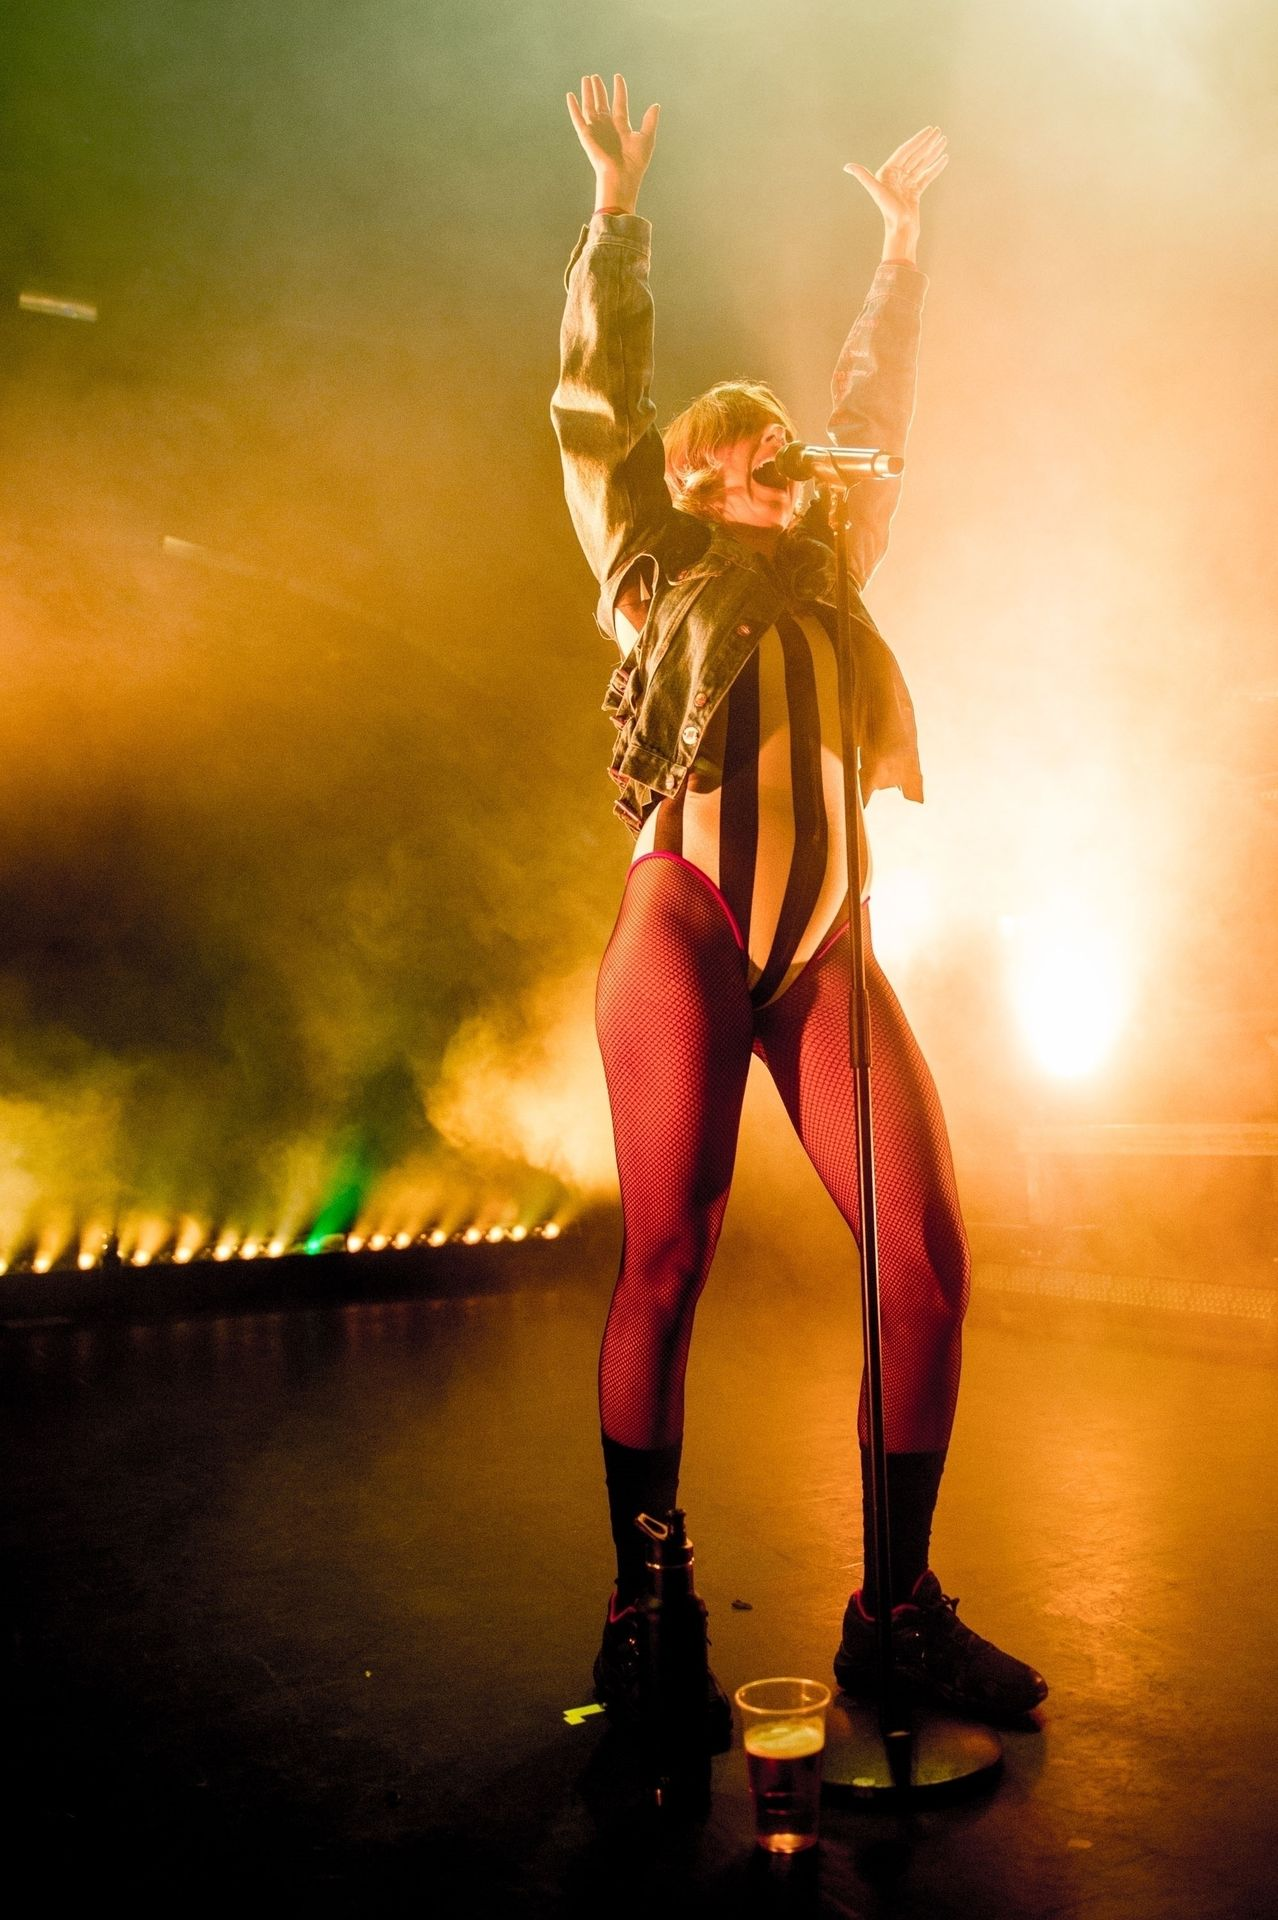 Tove Lo Is In Concert Performing Live At O2 Forum Kentish Town In London 0075